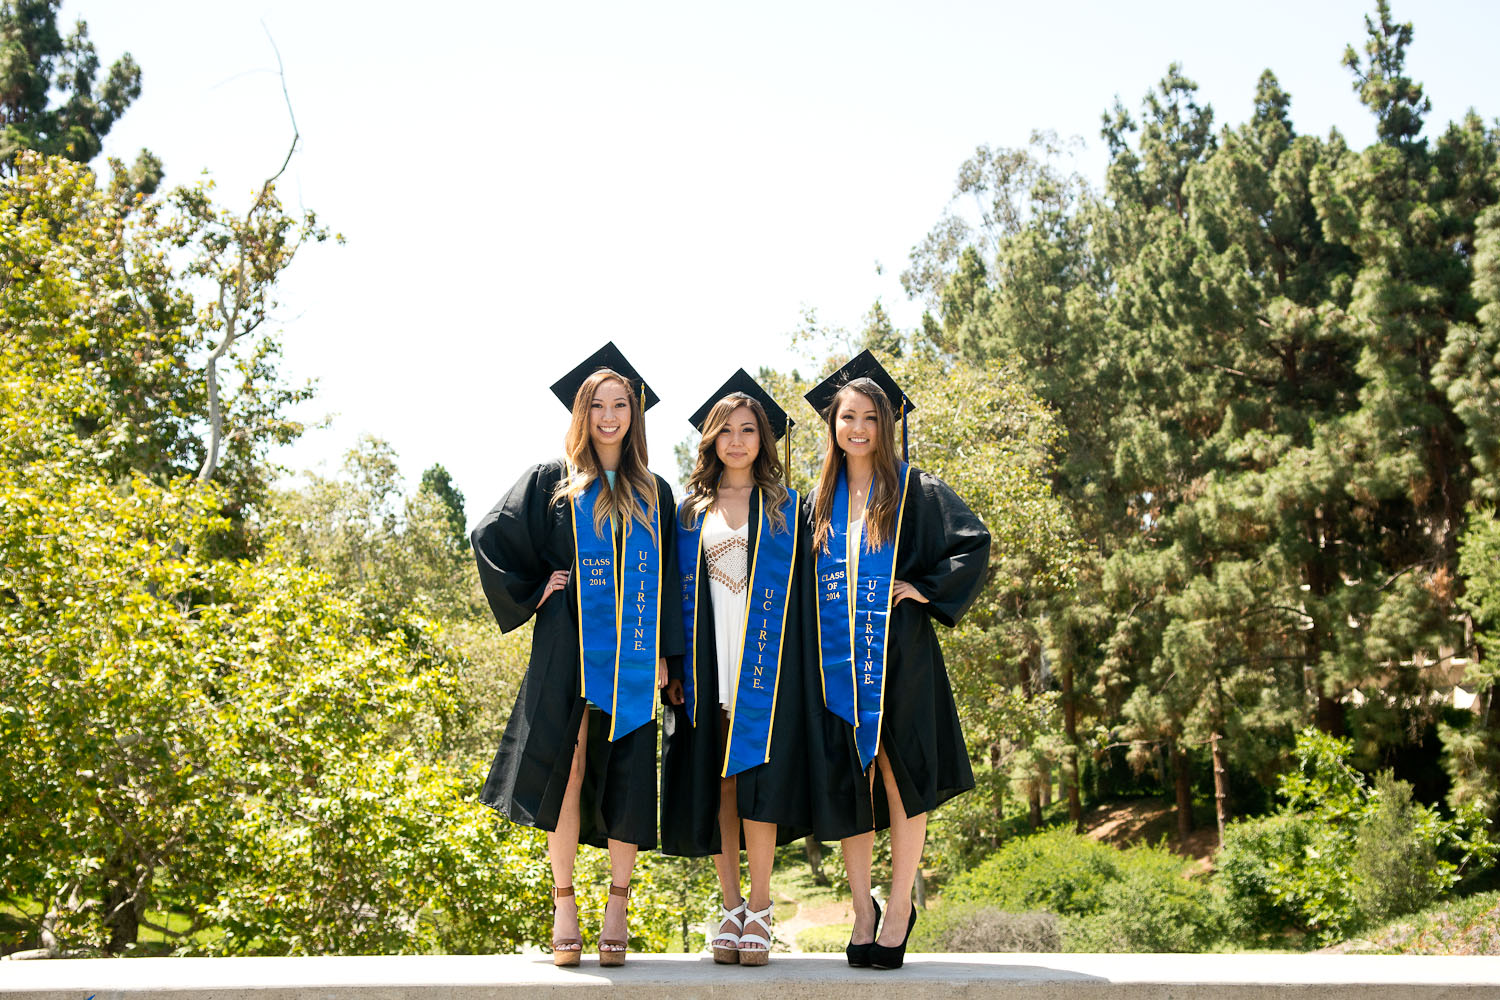 Bryan-Miraflor-Photography-Group-Shawna-Nancy-Lizzy-Grad-Photoshoot-UCI-20140607-0051.jpg